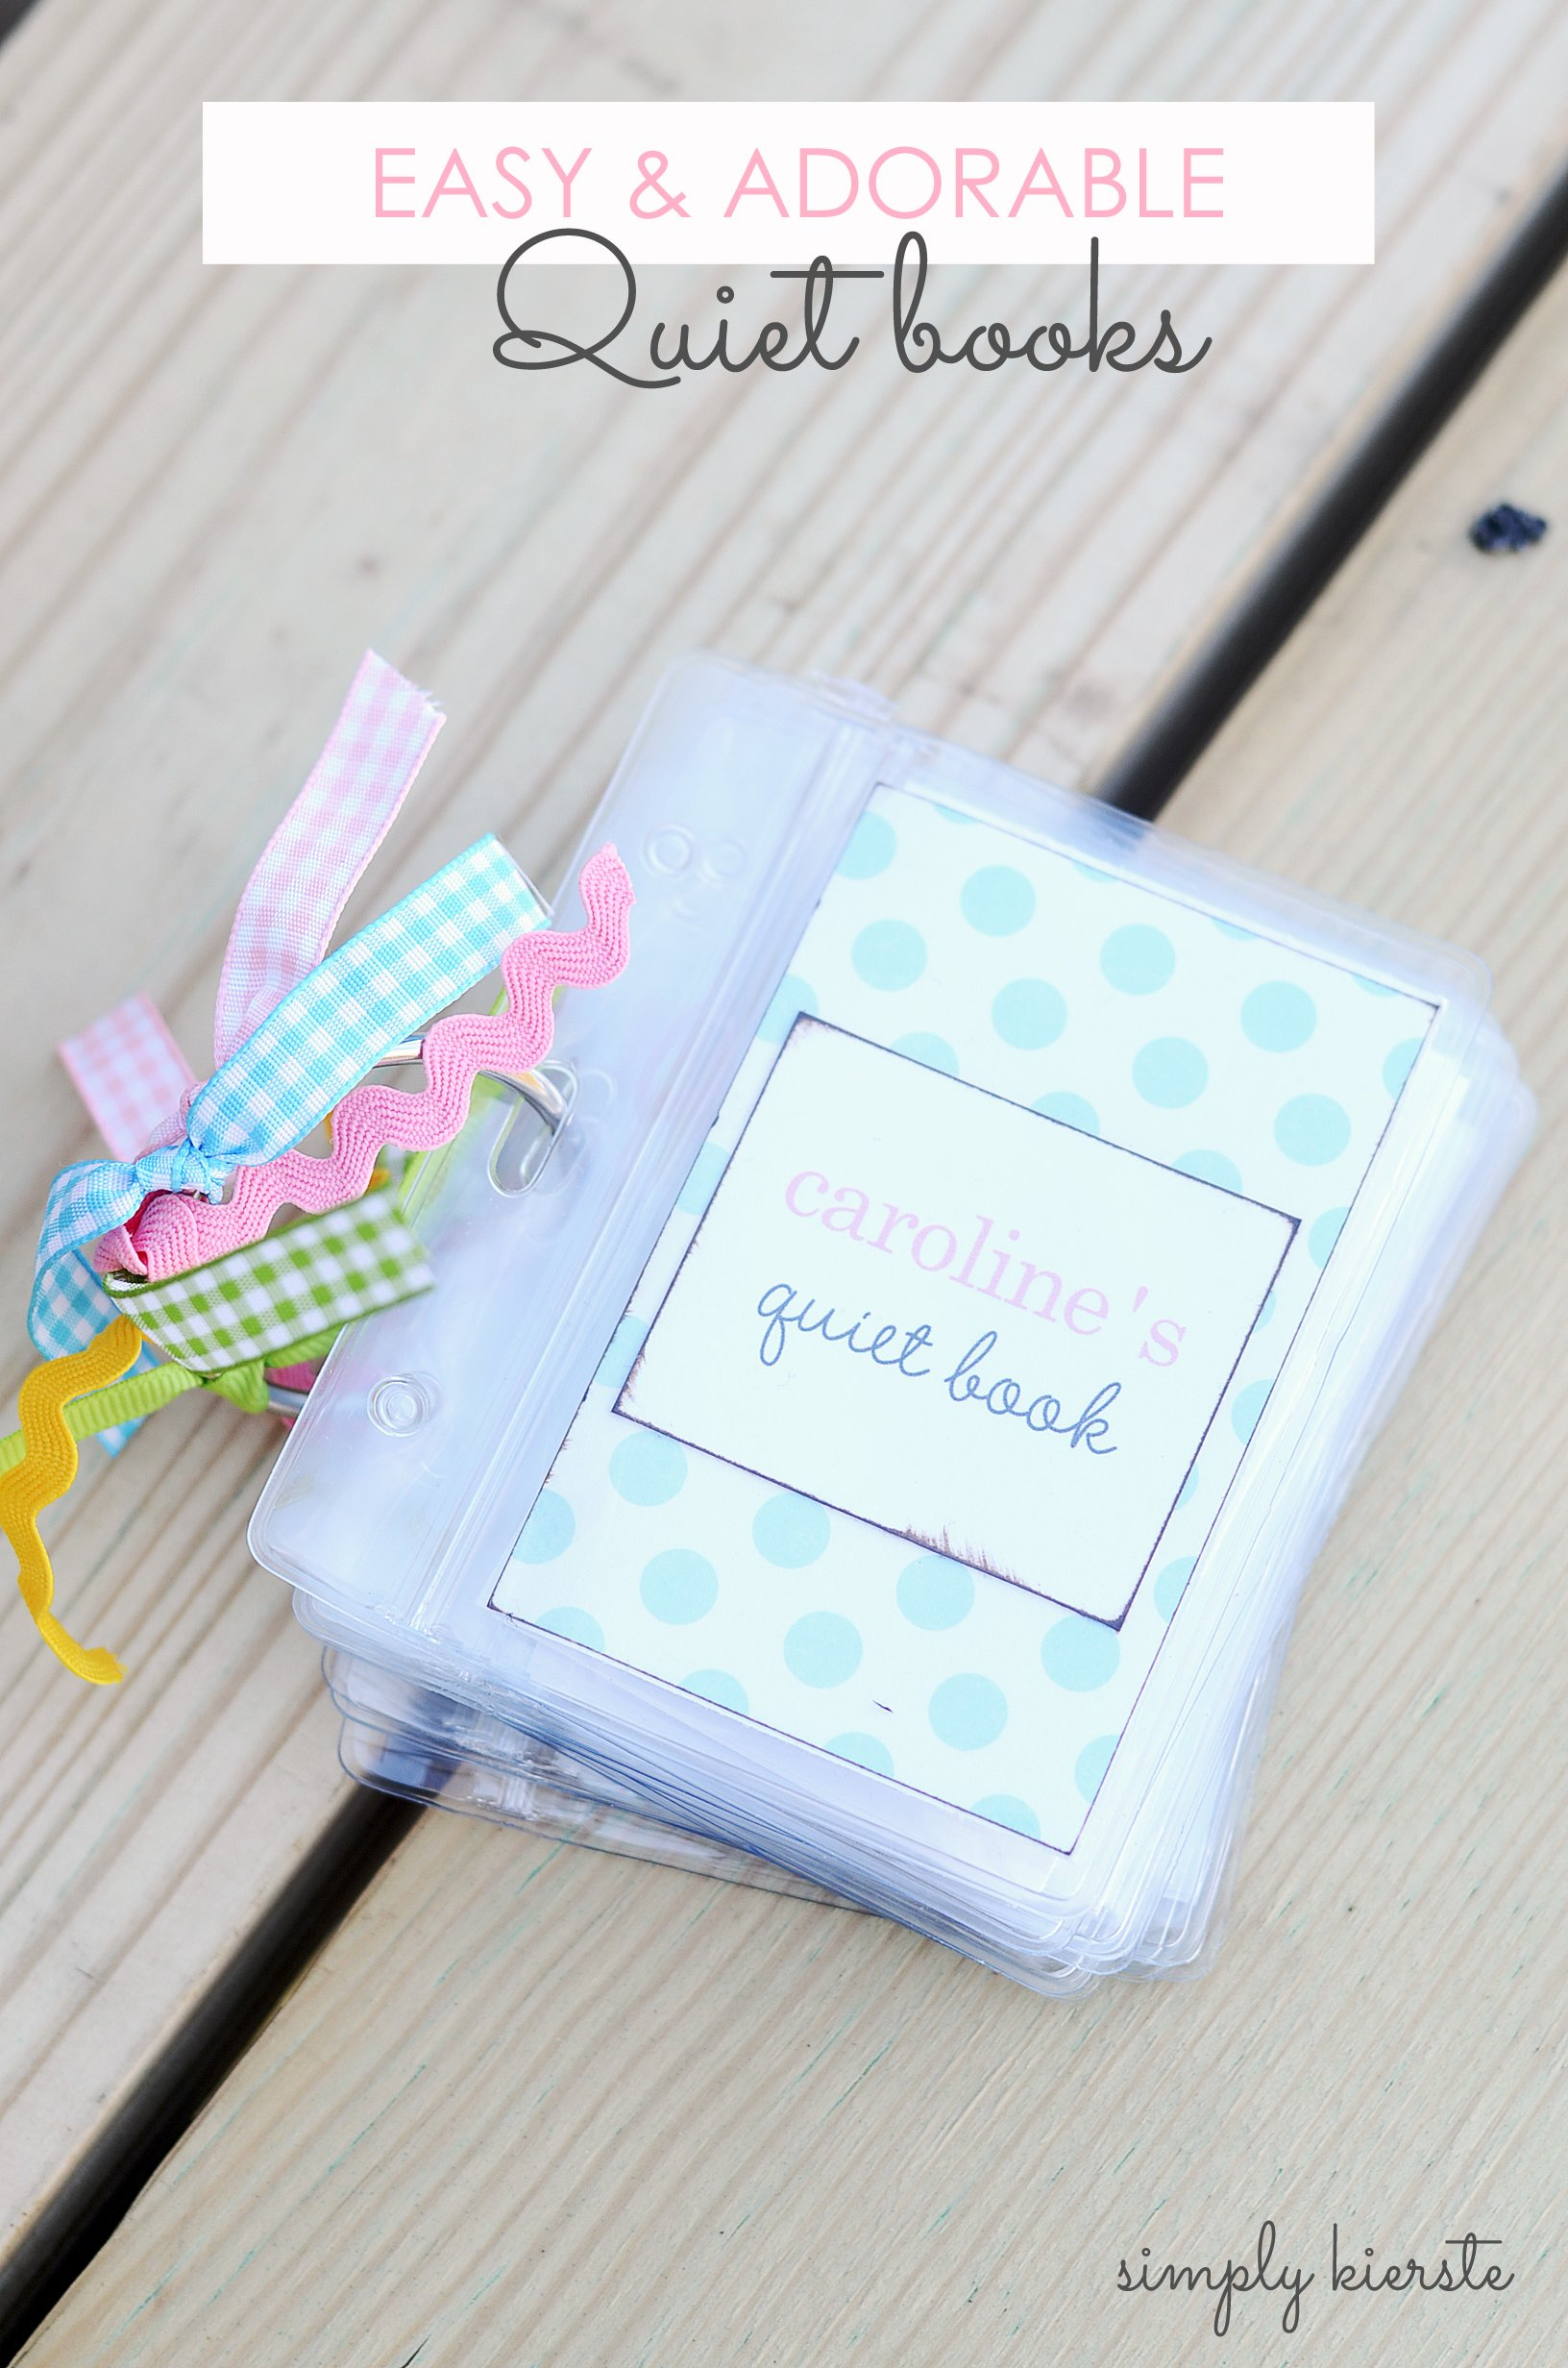 How to make an easy & adorable quiet book